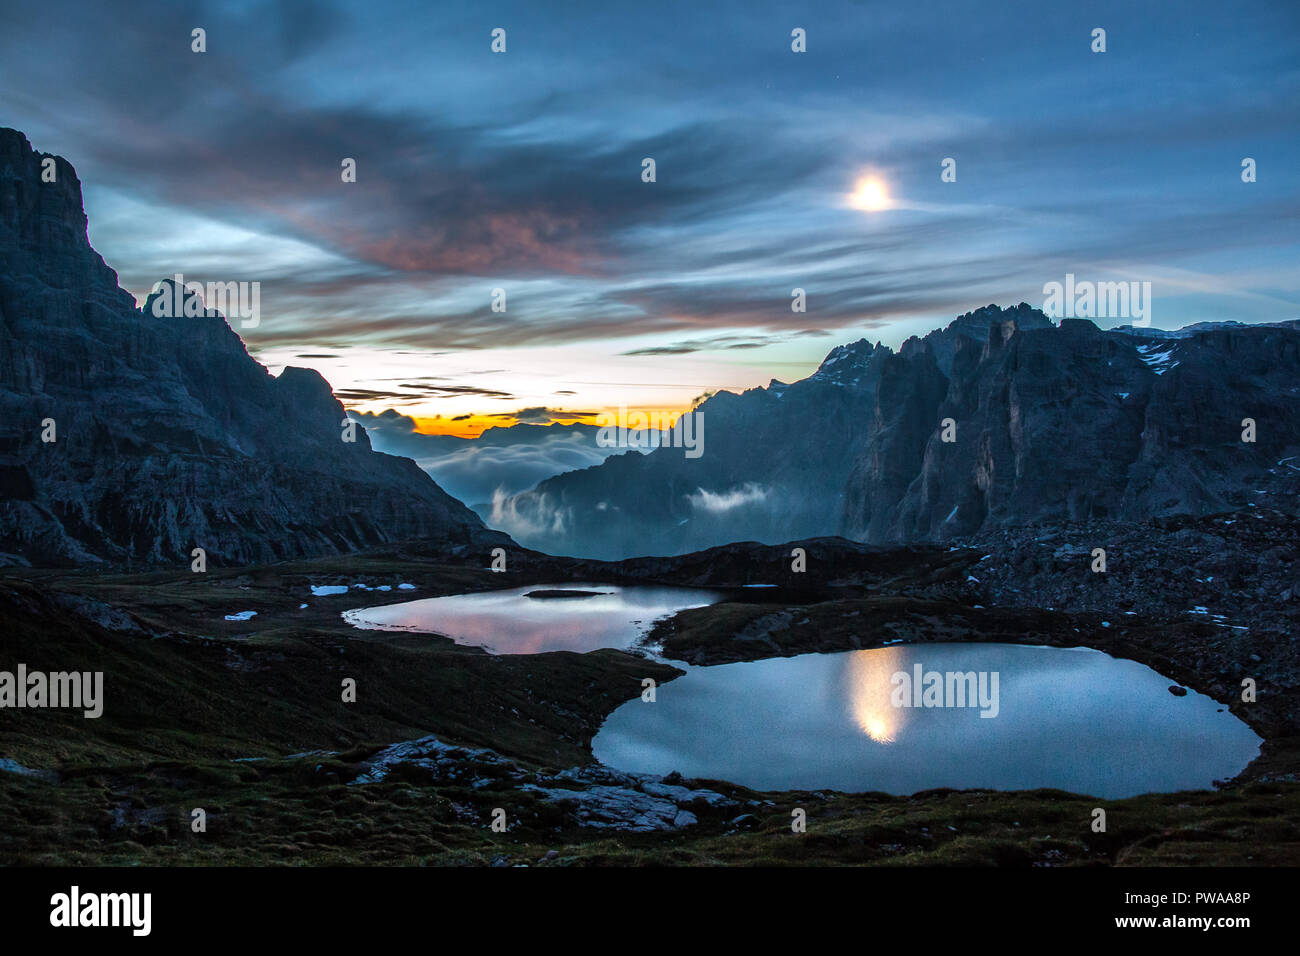 Moonlight and dusk lights reflected in Laghi dei Piani, South Tyrol, Italy - Stock Image